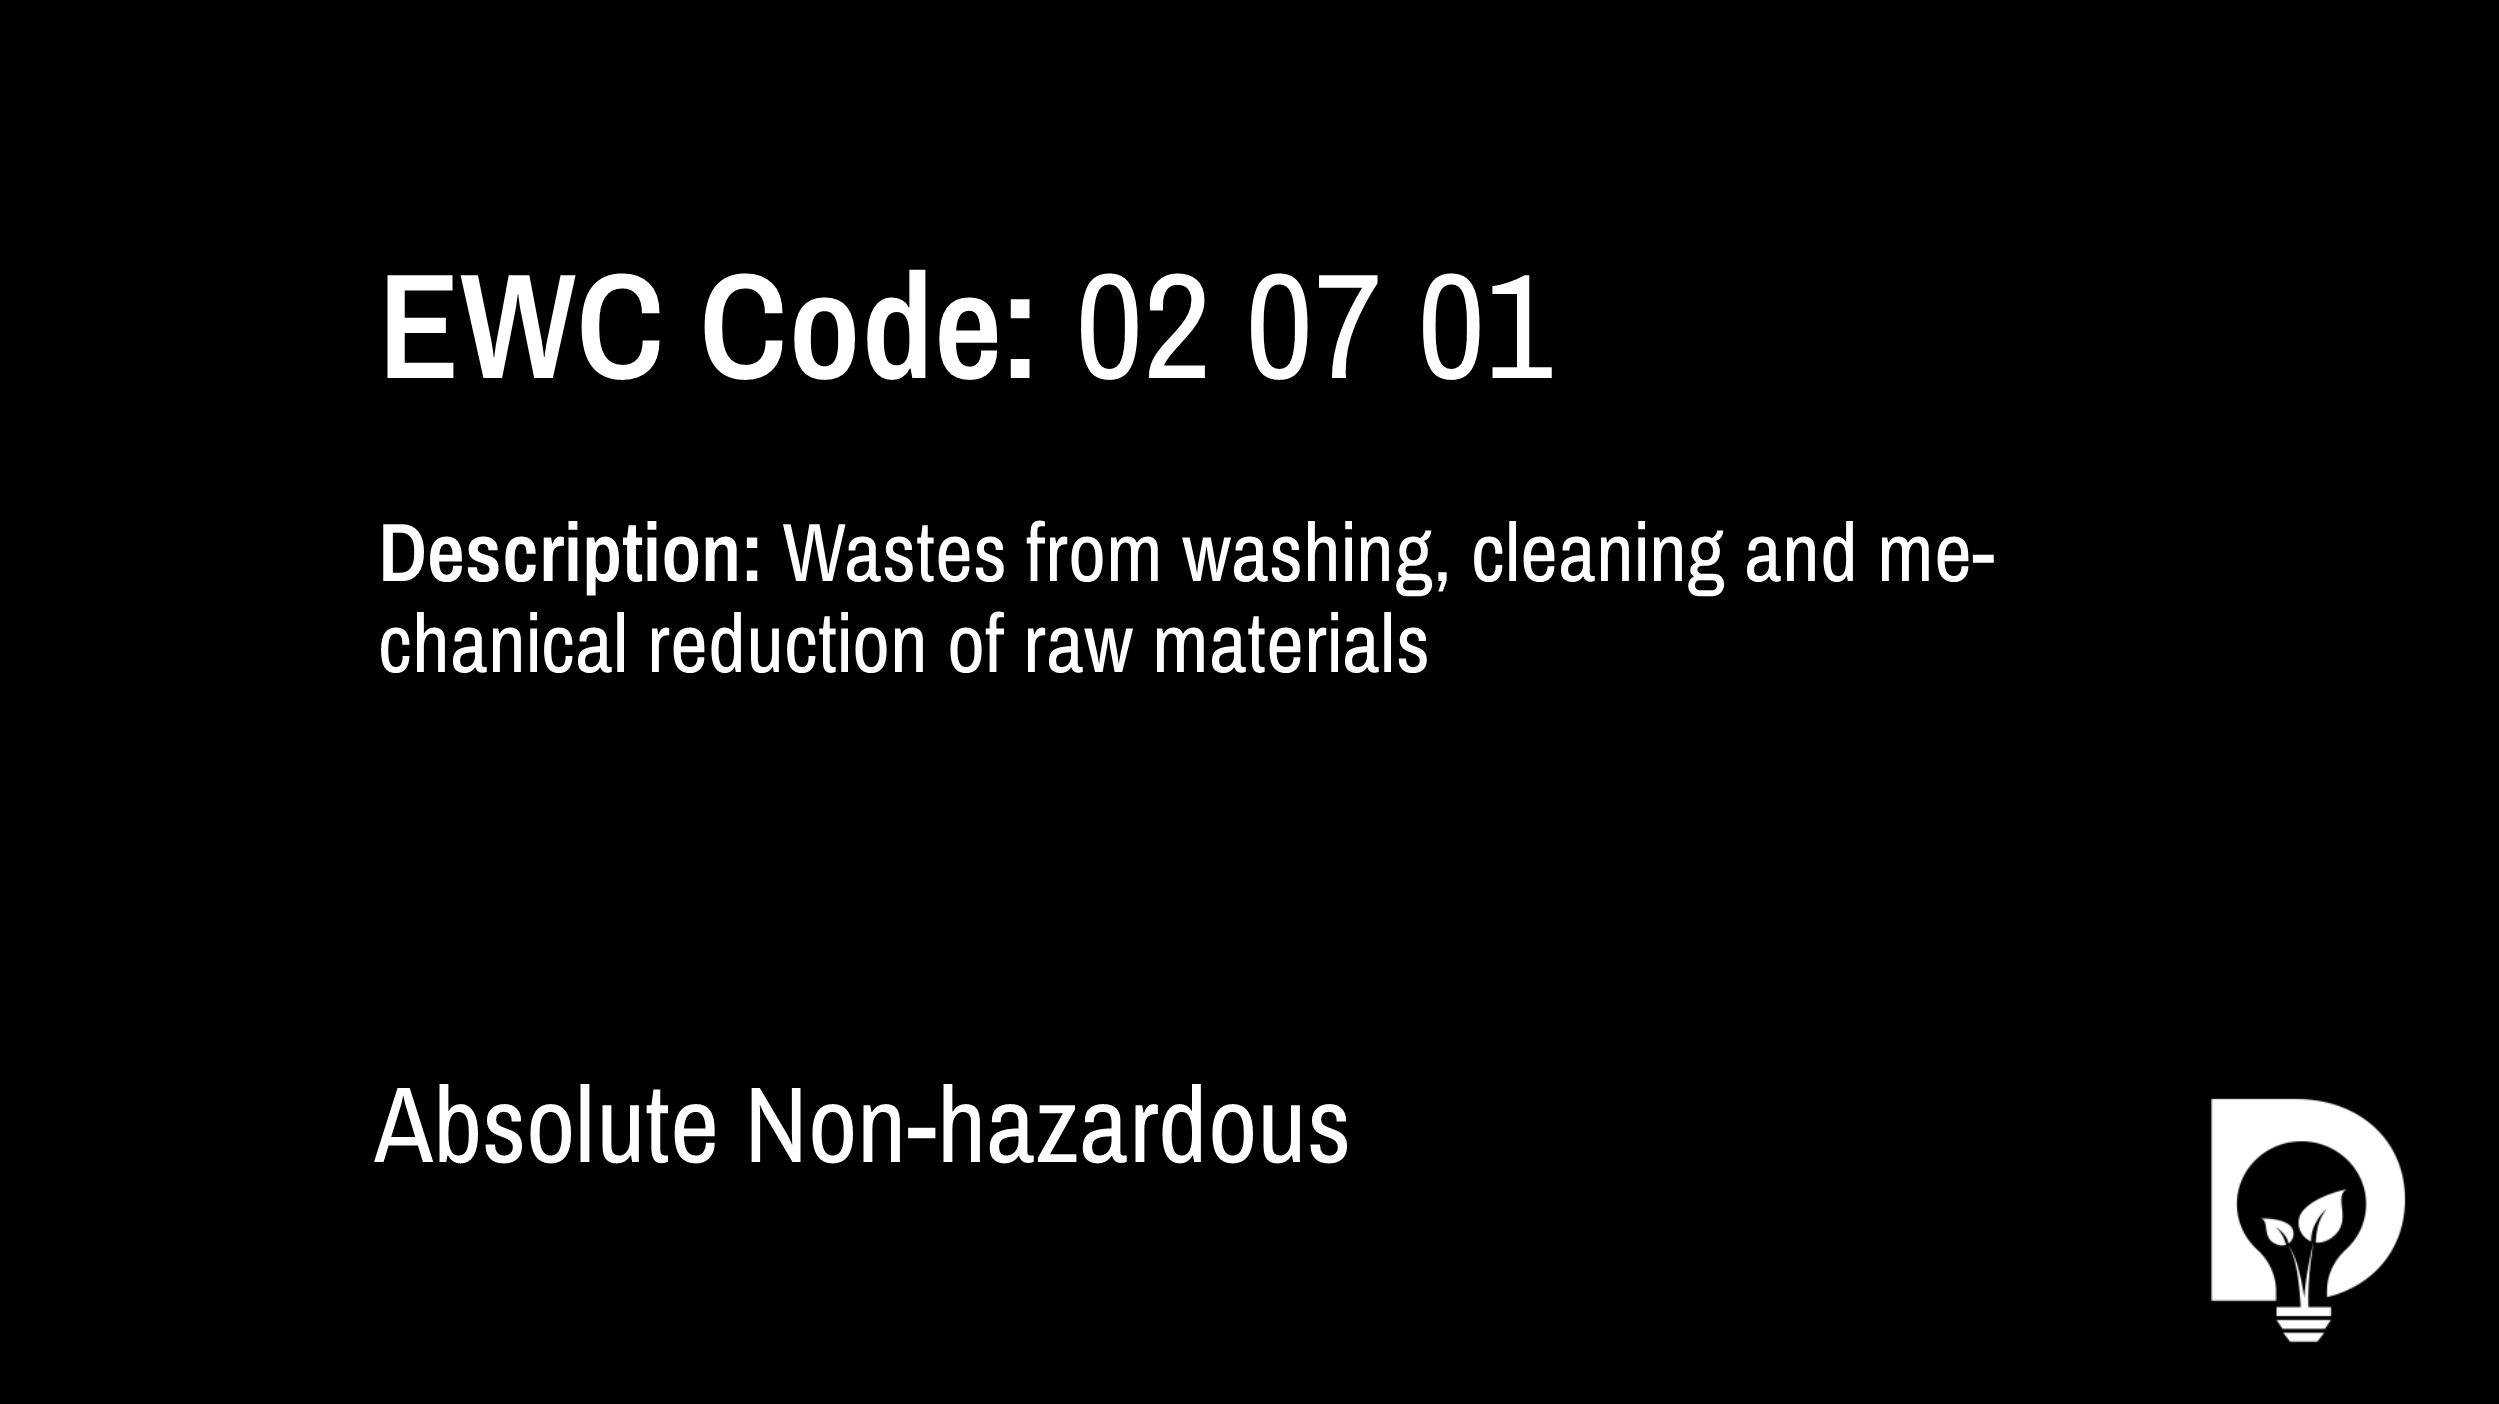 EWC Code: 02 07 01 - wastes from washing, cleaning and mechanical reduction of raw materials. Type: Absolute Non-hazardous. Image by Dsposal